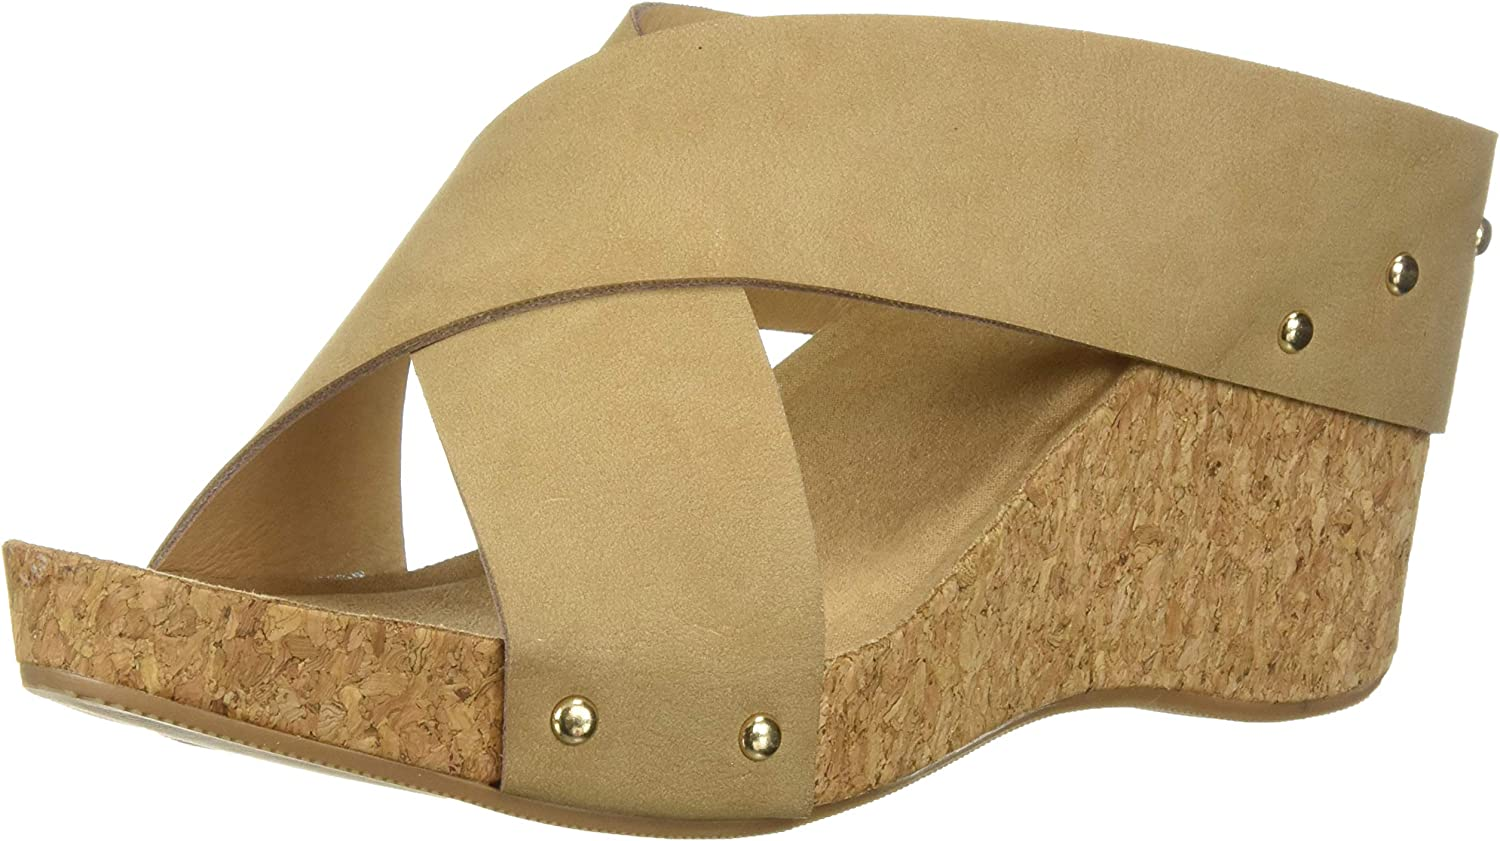 CL by Chinese Laundry Women's Abloom Wedge Sandal